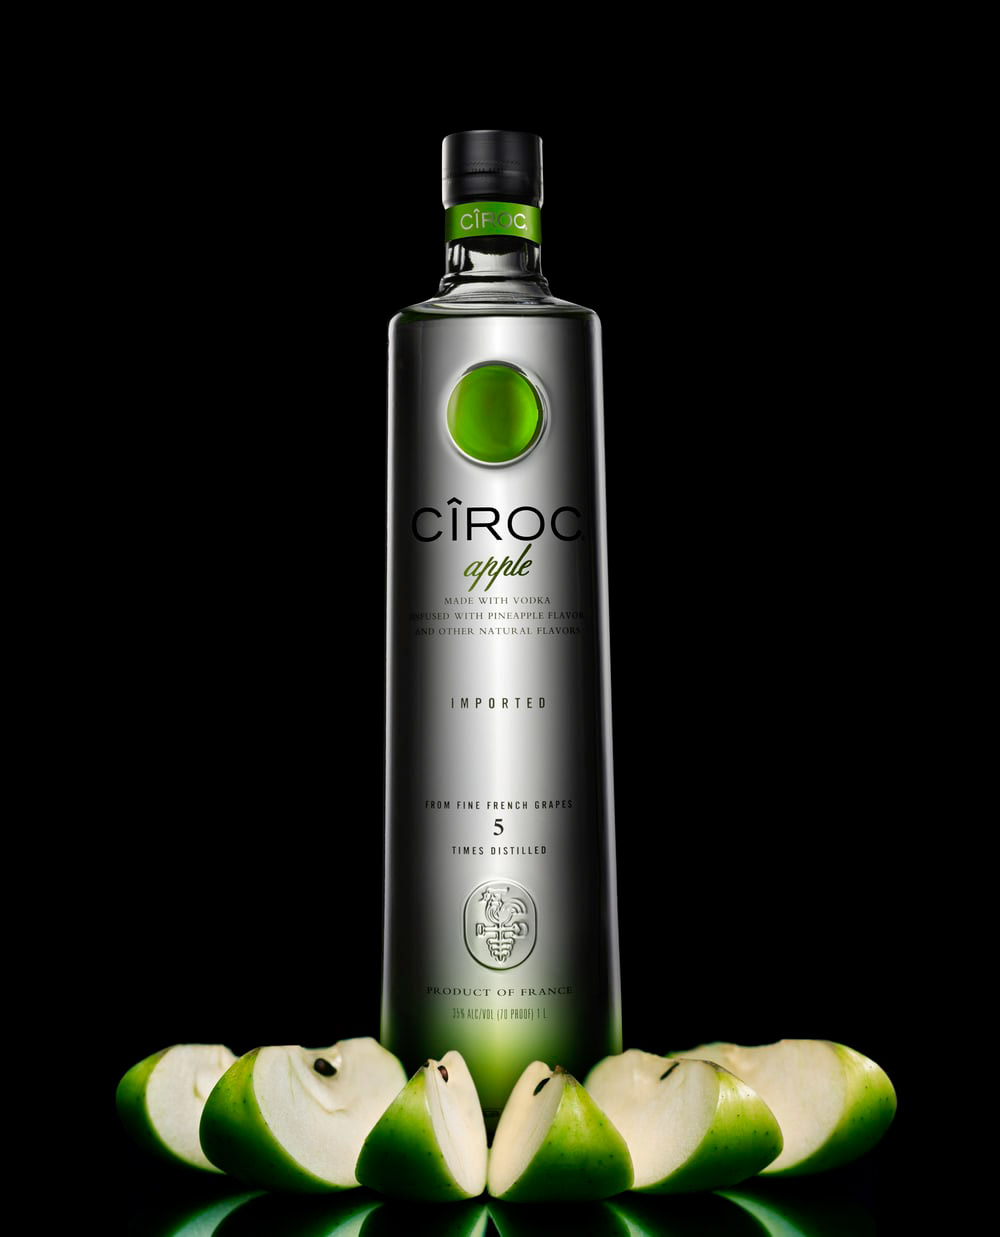 003-Ciroc_Black+Lotus.jpg